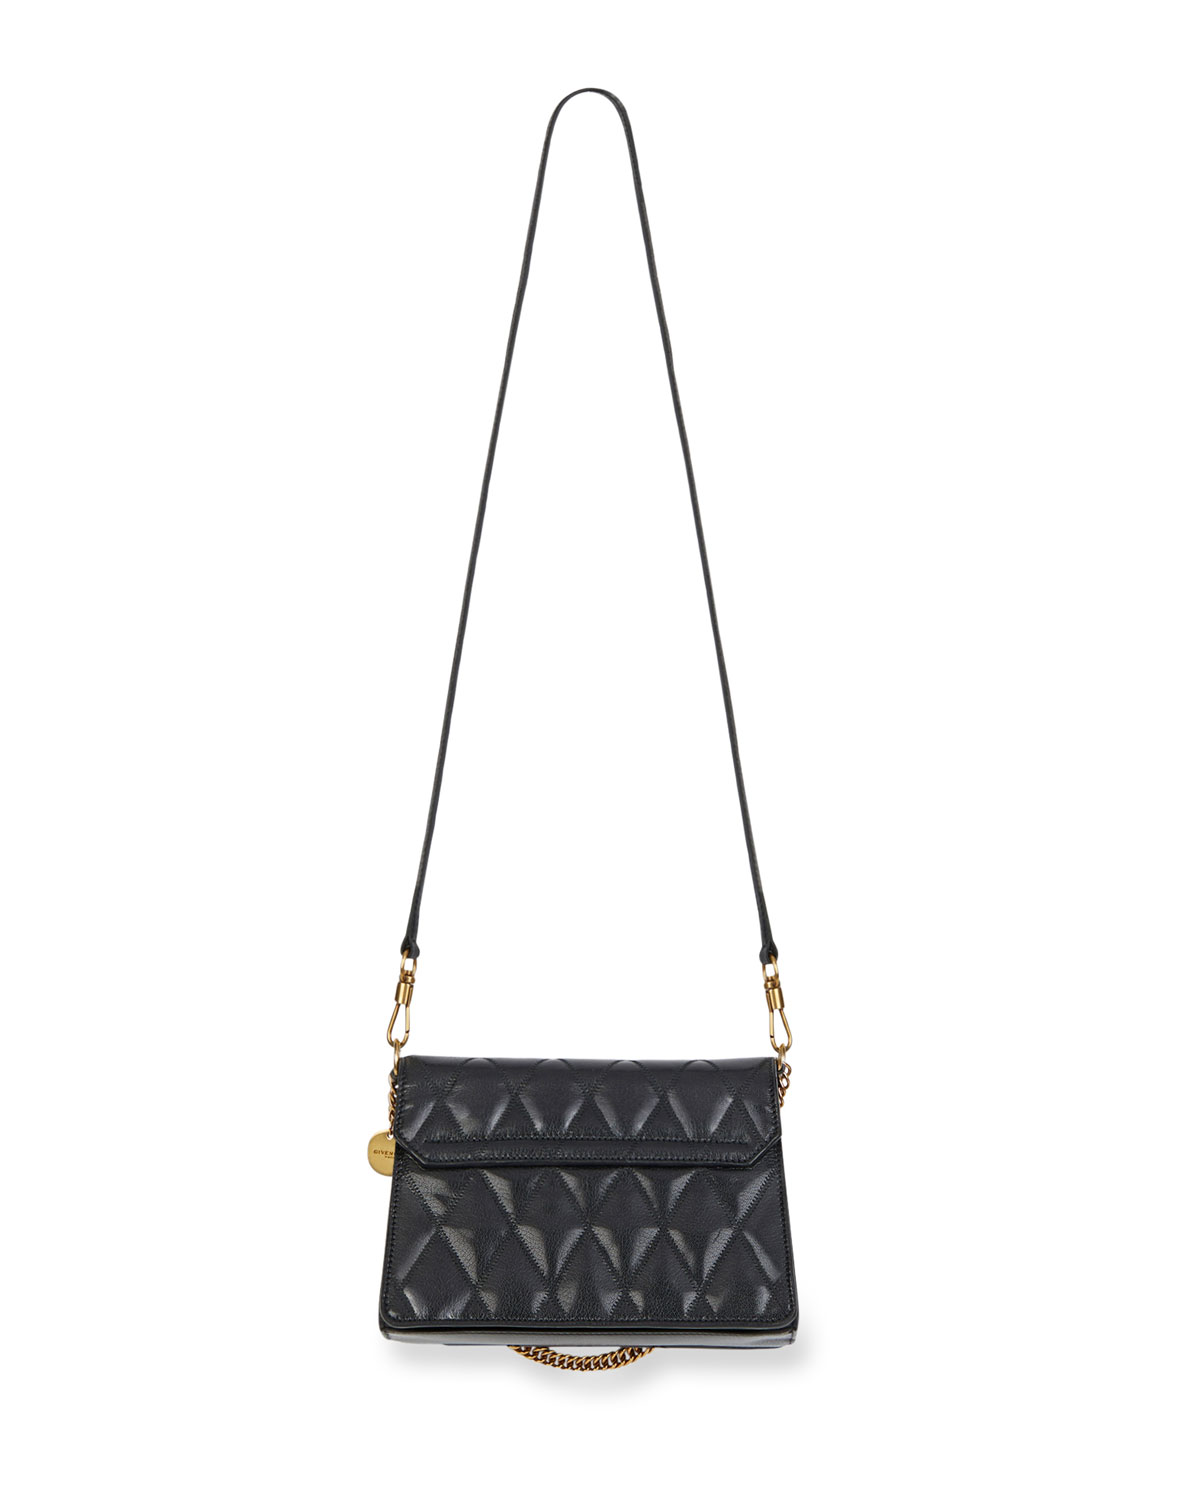 Hurber Women Evening Clutch Purse Formal Bags Leather Chain Crossbody Shoulder Bag Quilted Purse